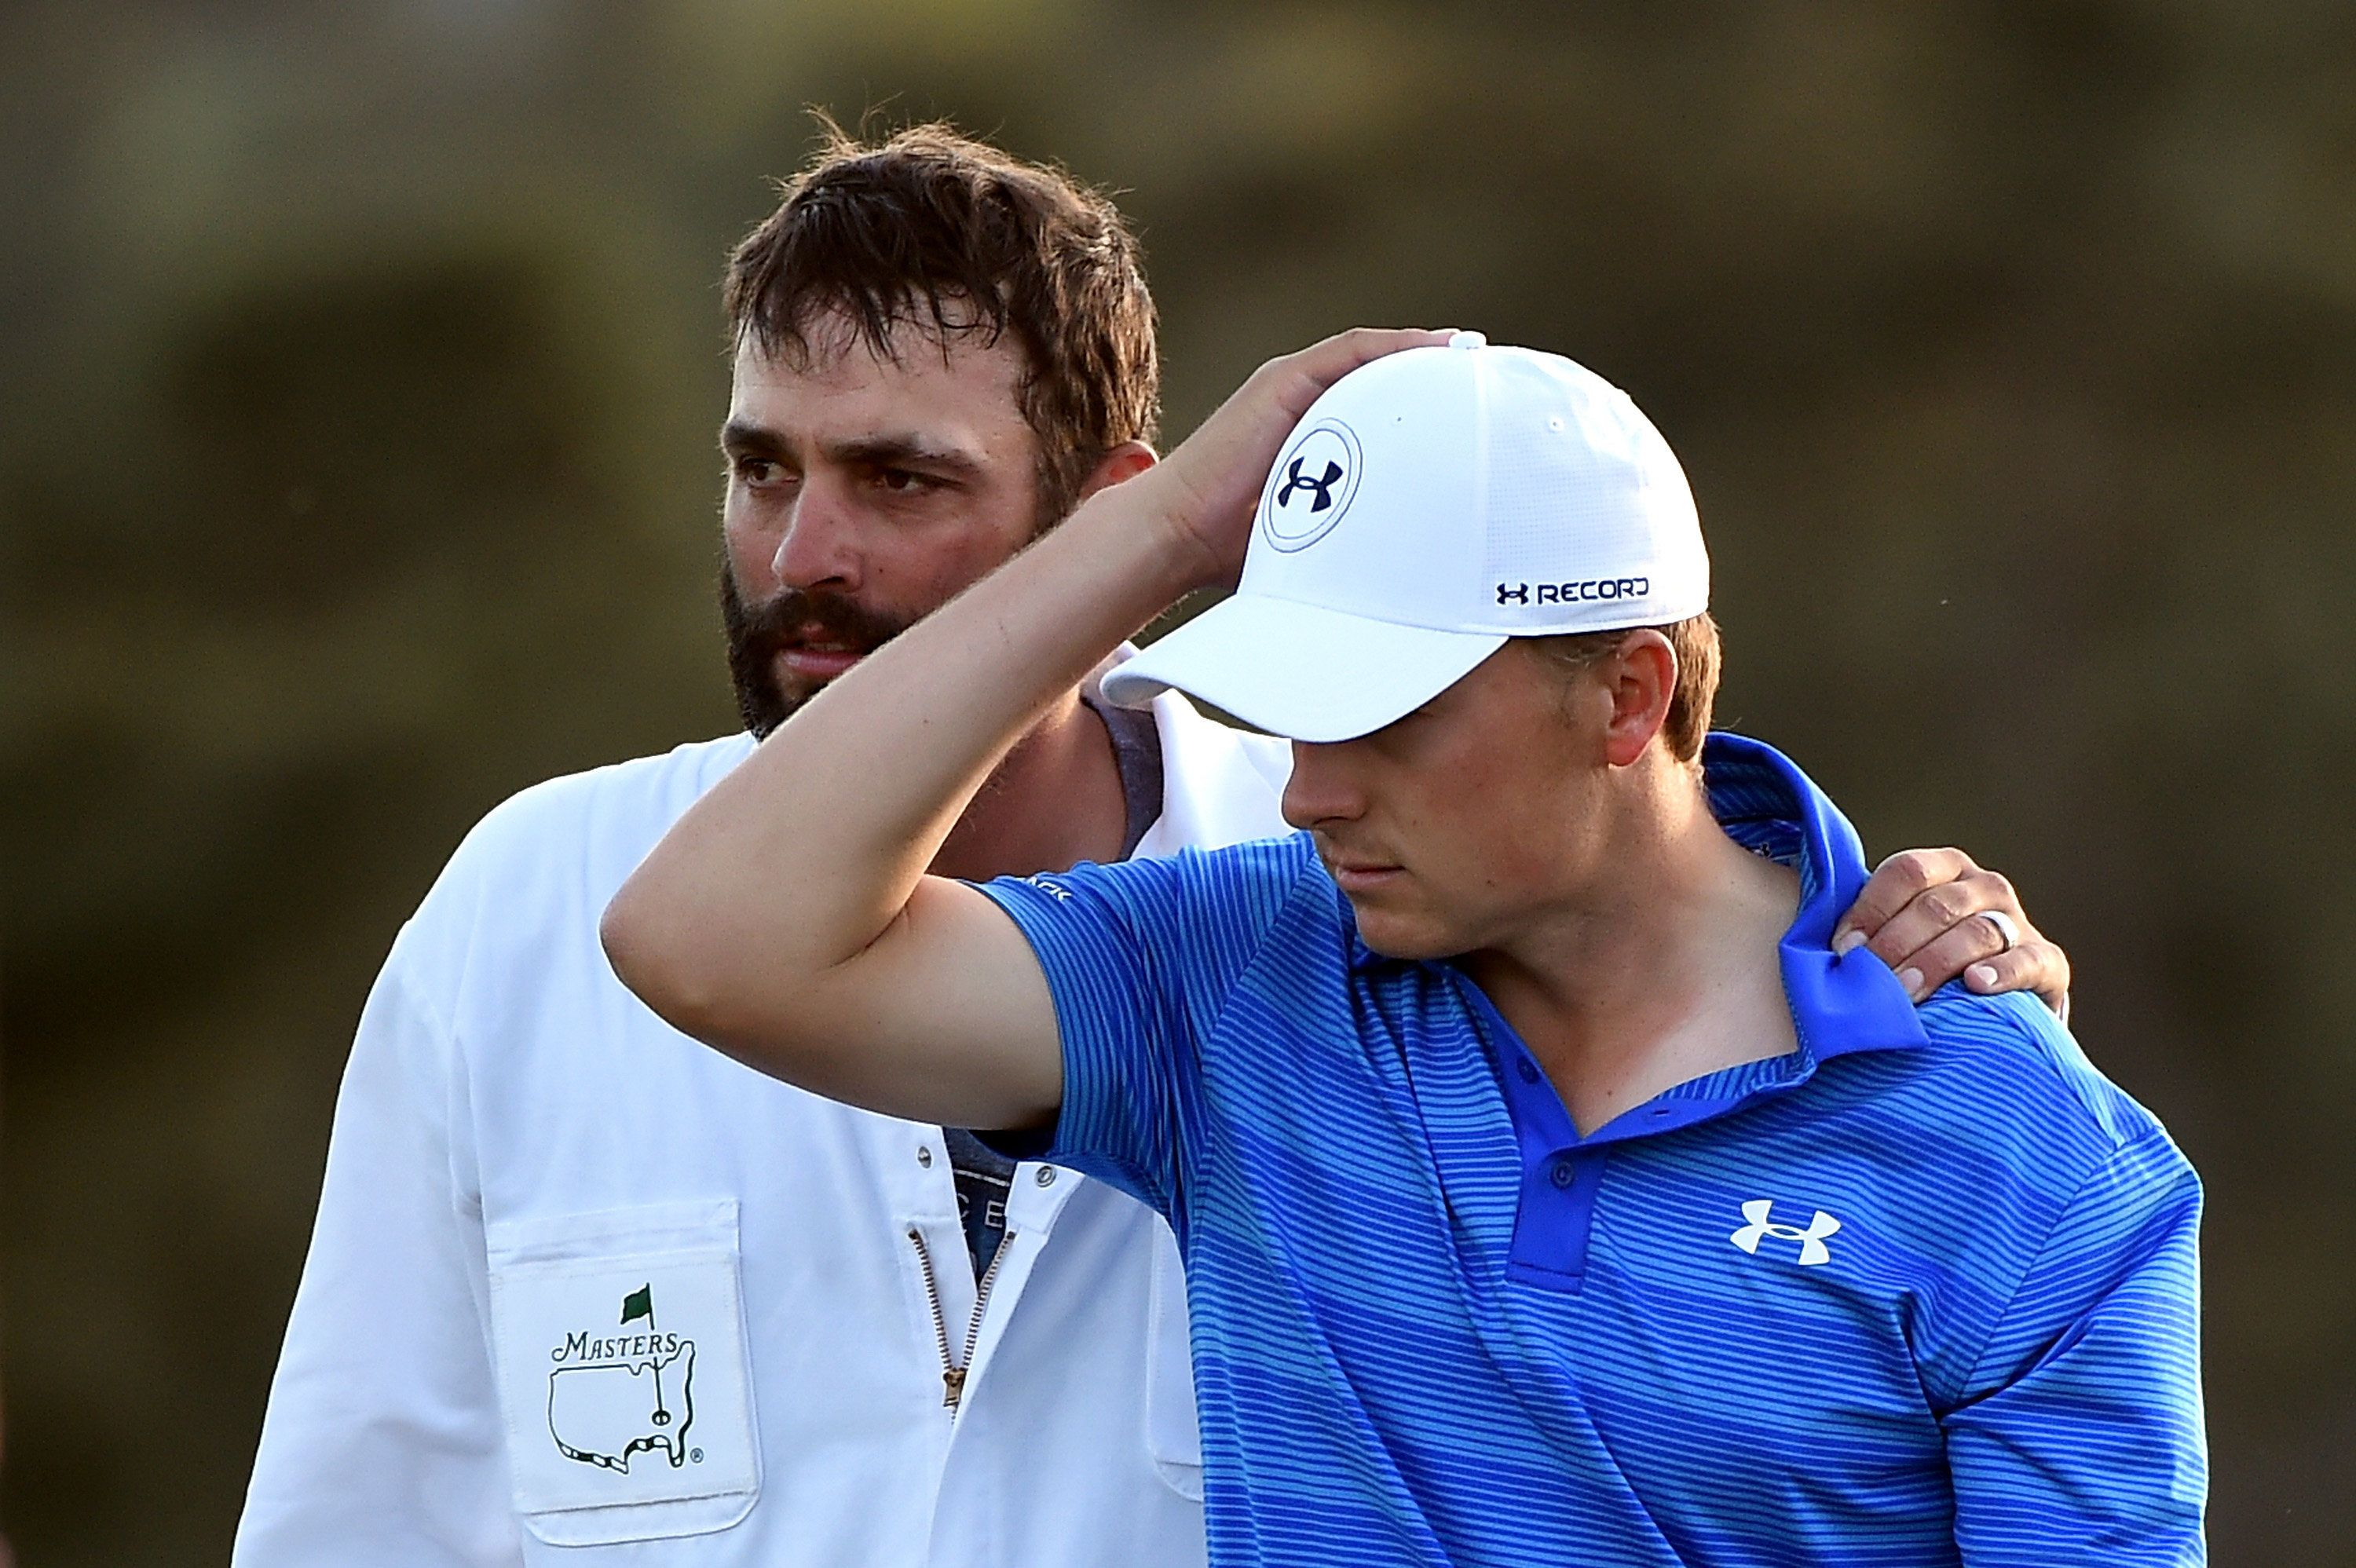 AUGUSTA, GEORGIA - APRIL 10:  Jordan Spieth of the United States and caddie Michael Greller react after finishing on the 18th green during the final round of the 2016 Masters Tournament at Augusta National Golf Club on April 10, 2016 in Augusta, Georgia.  (Photo by Harry How/Getty Images)